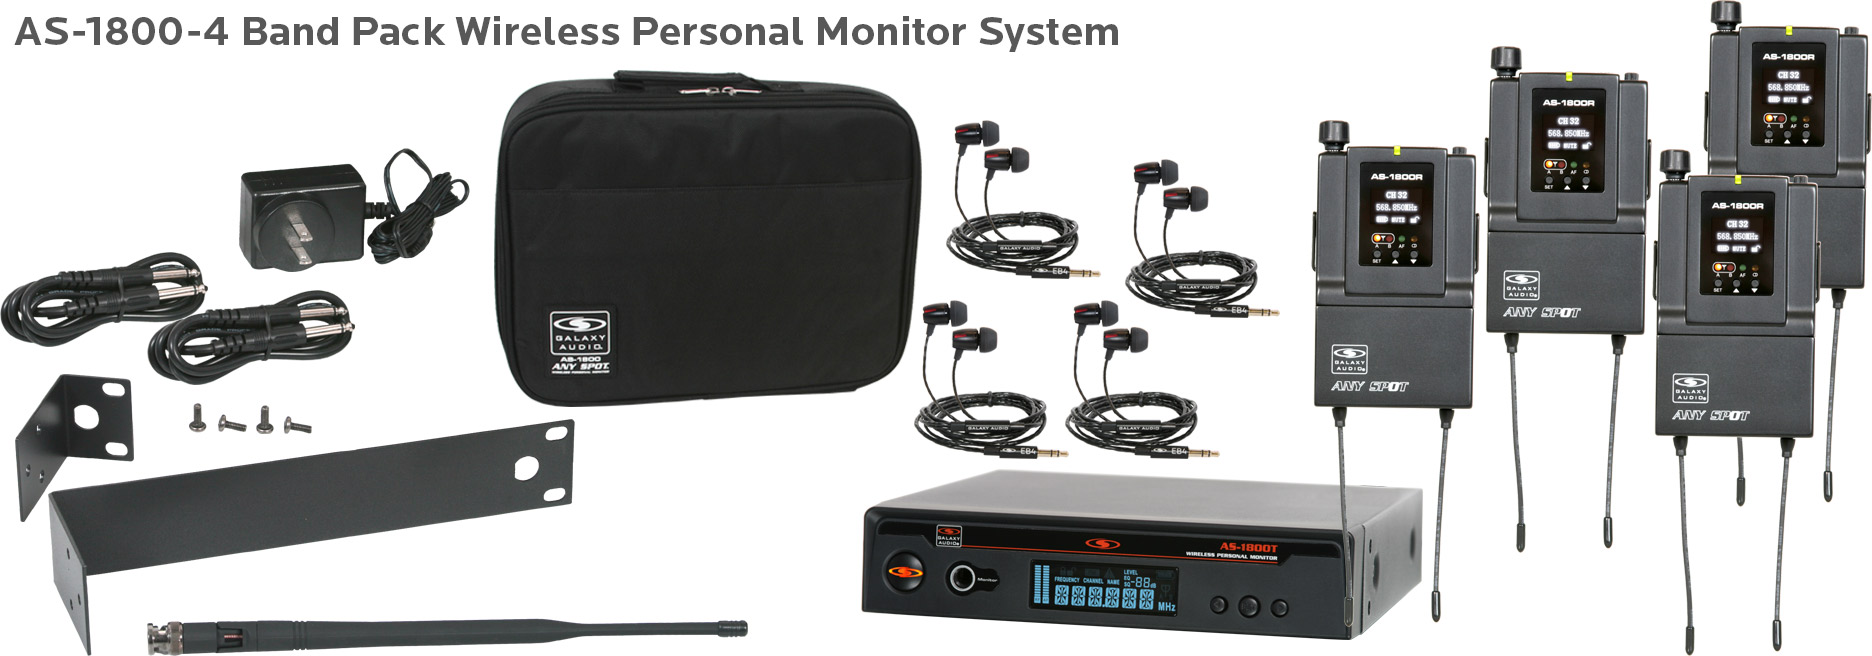 AS-1800-4 Band Pack Wireless Personal Monitor by Galaxy Audio